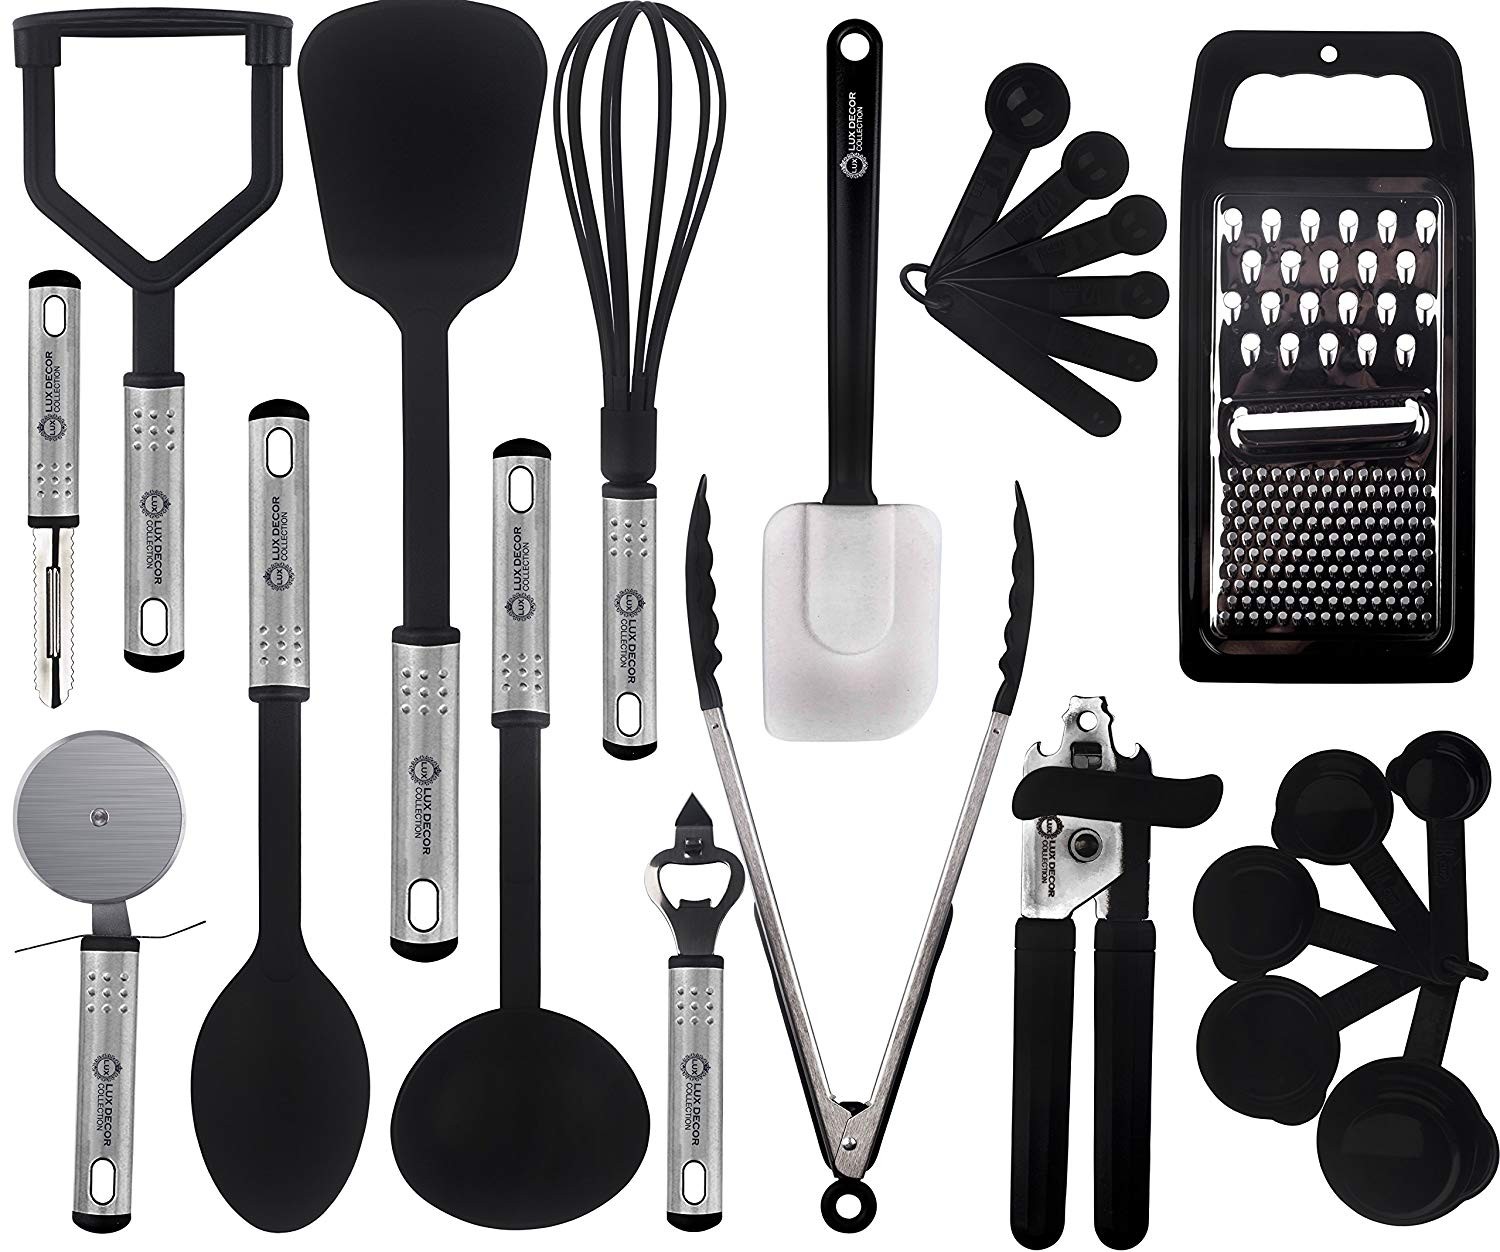 kitchen utensil sets industrial cabinets lux decor cooking utensils set 23 pieces nylon gadgets cookware